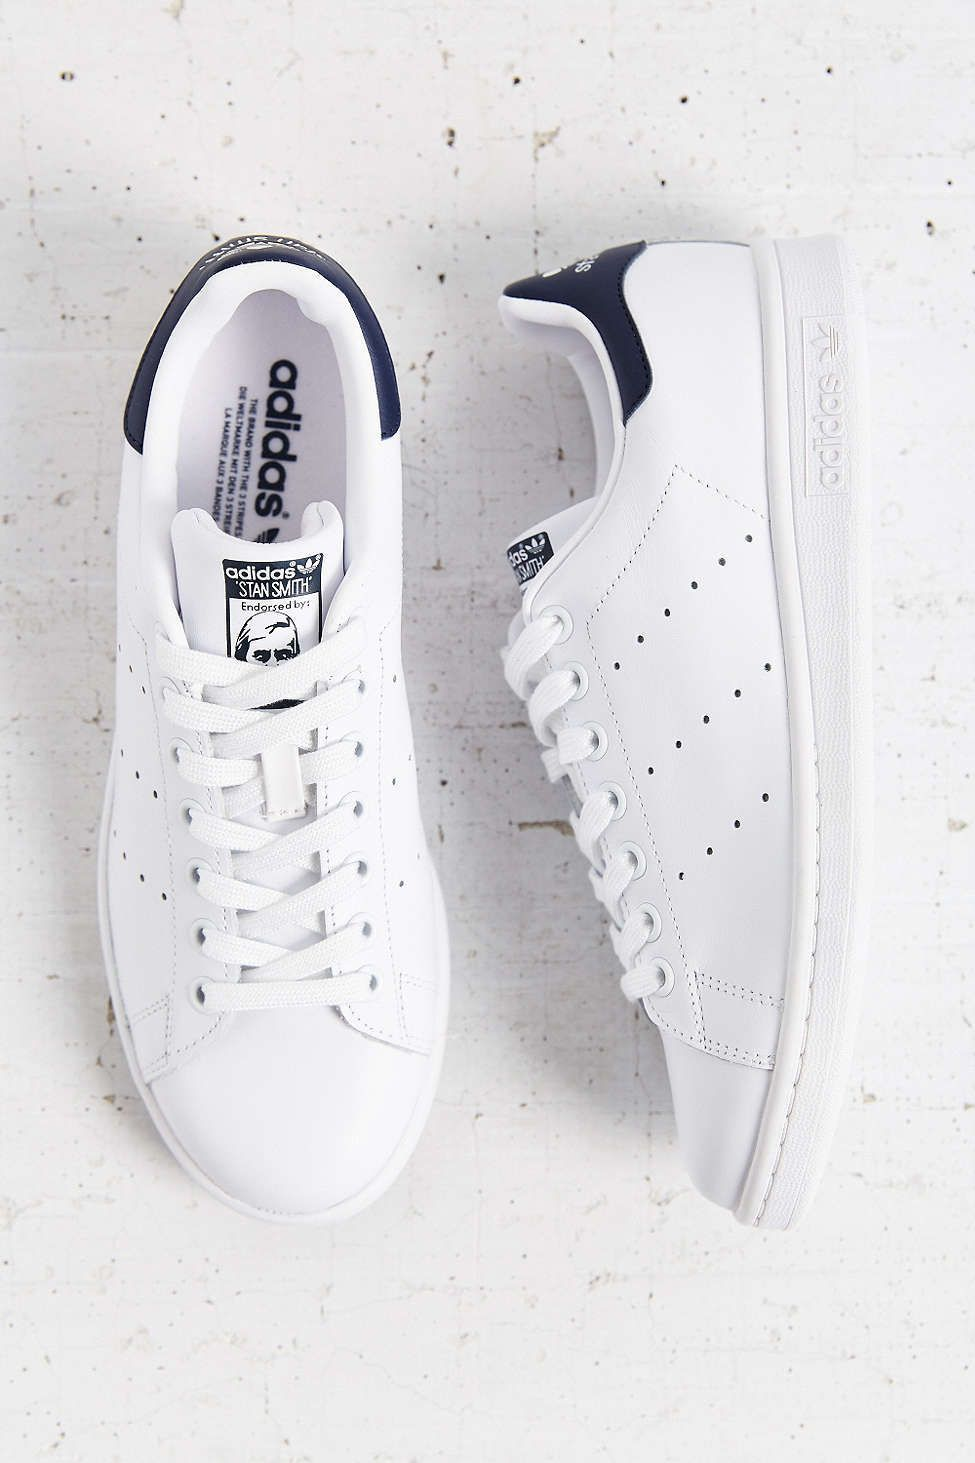 new styles 8ef7e 11a17 adidas Originals Stan Smith Sneaker - Urban Outfitters